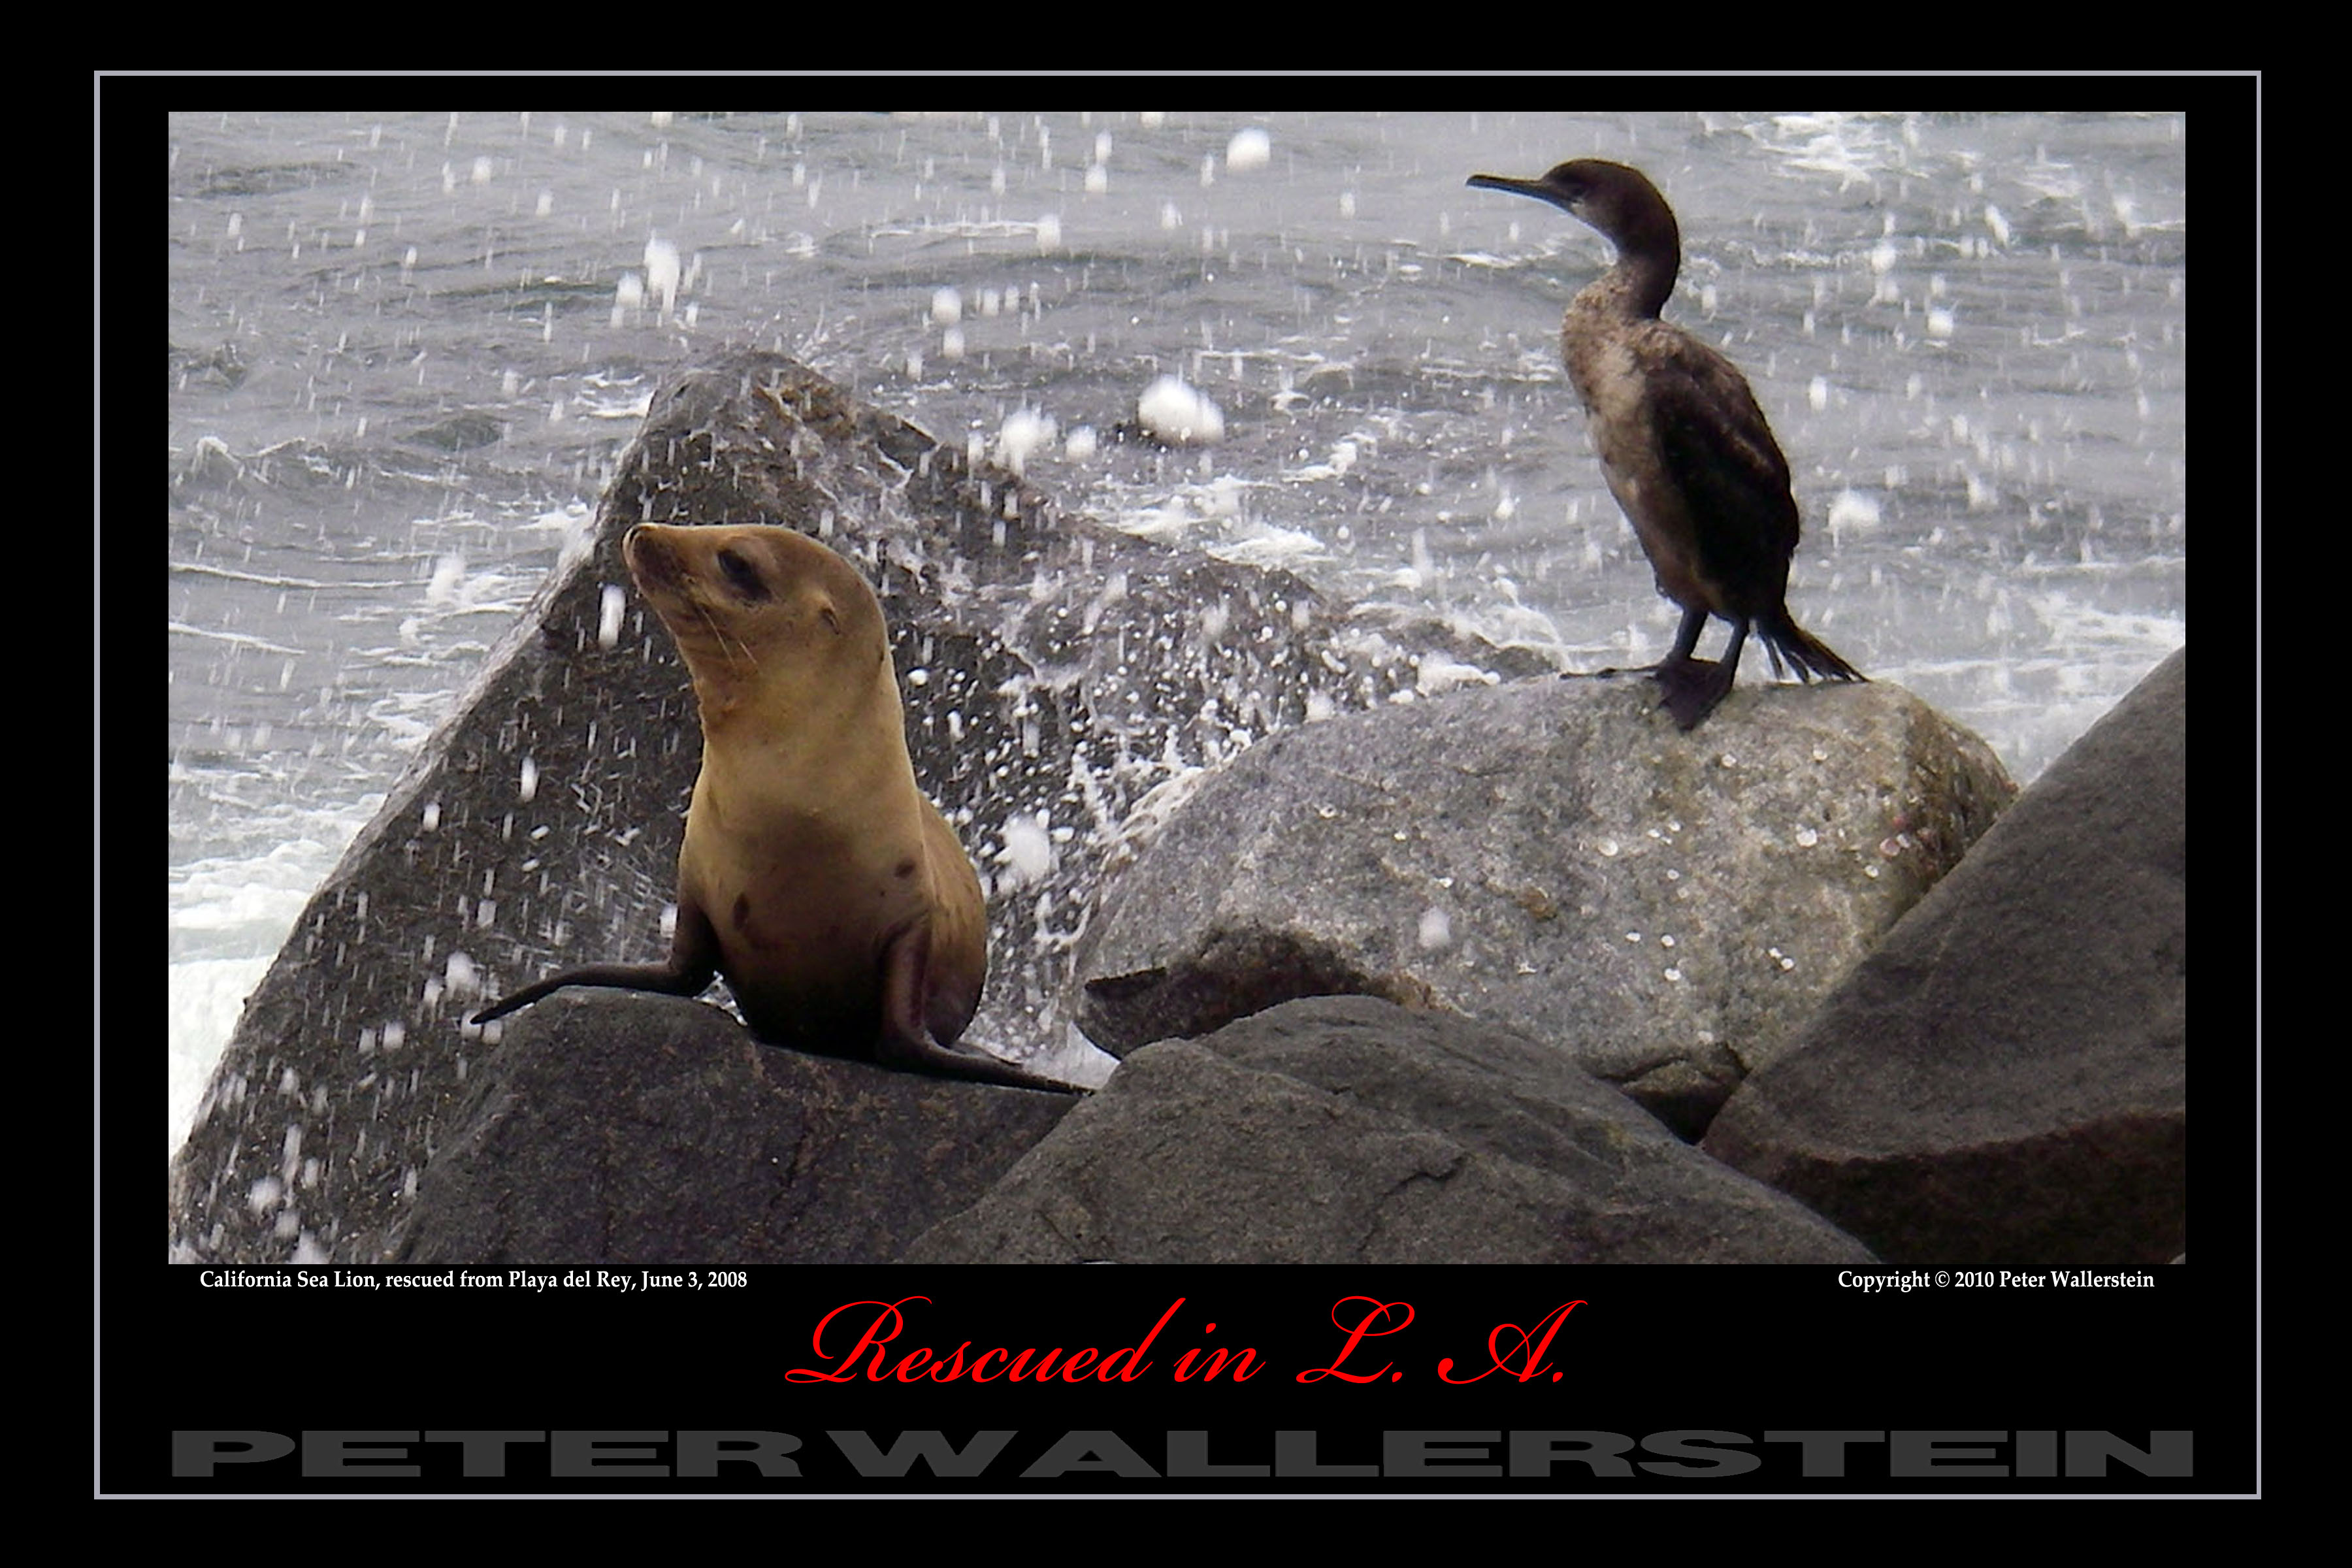 Cormorant and California Sea Lion